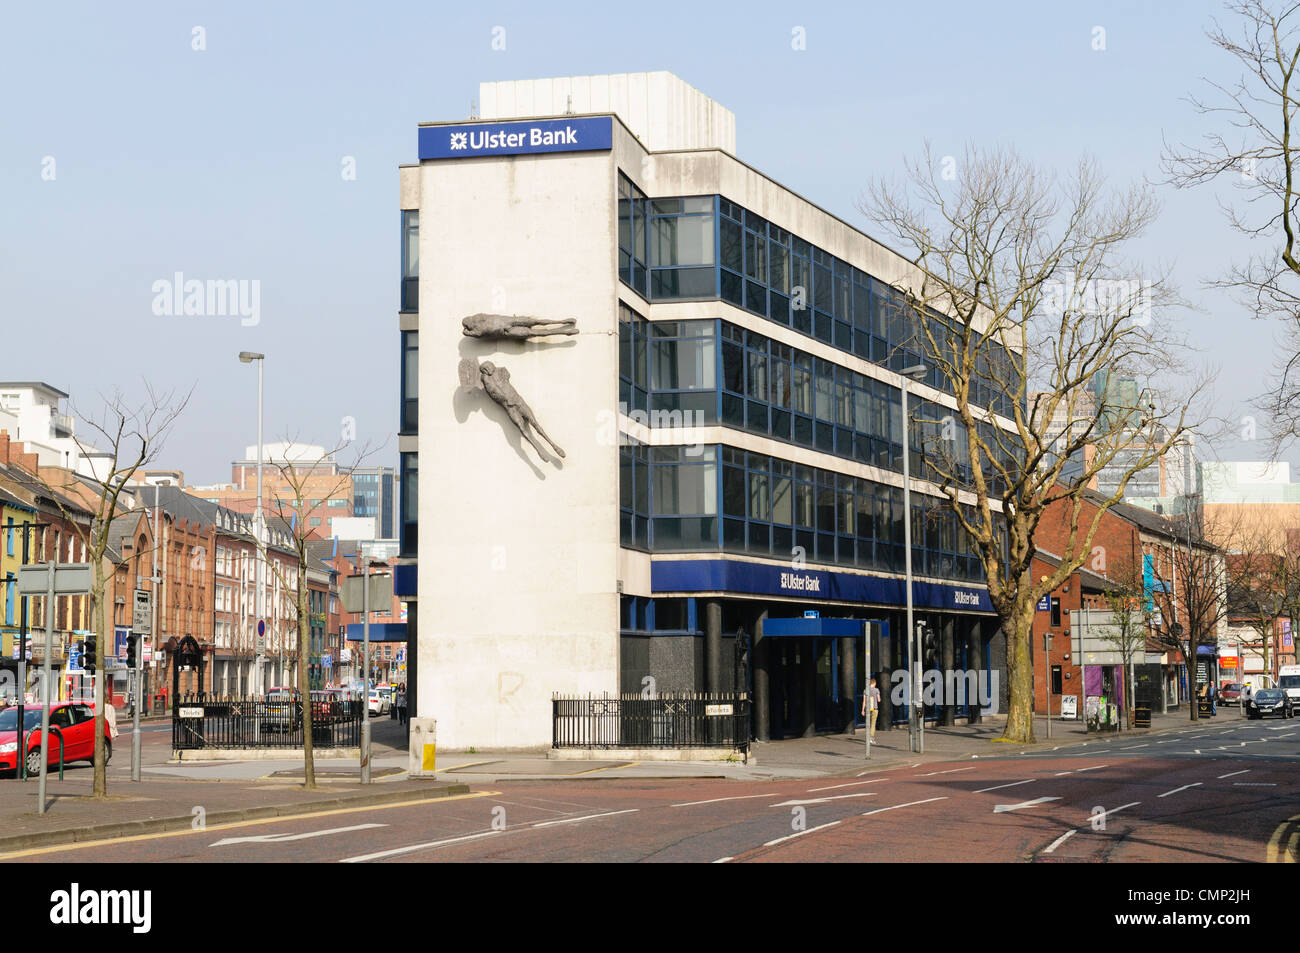 The famous Ulster Bank Building at Shaftesbury Square, Belfast with 'Flying Figures' sculptures by Dame - Stock Image